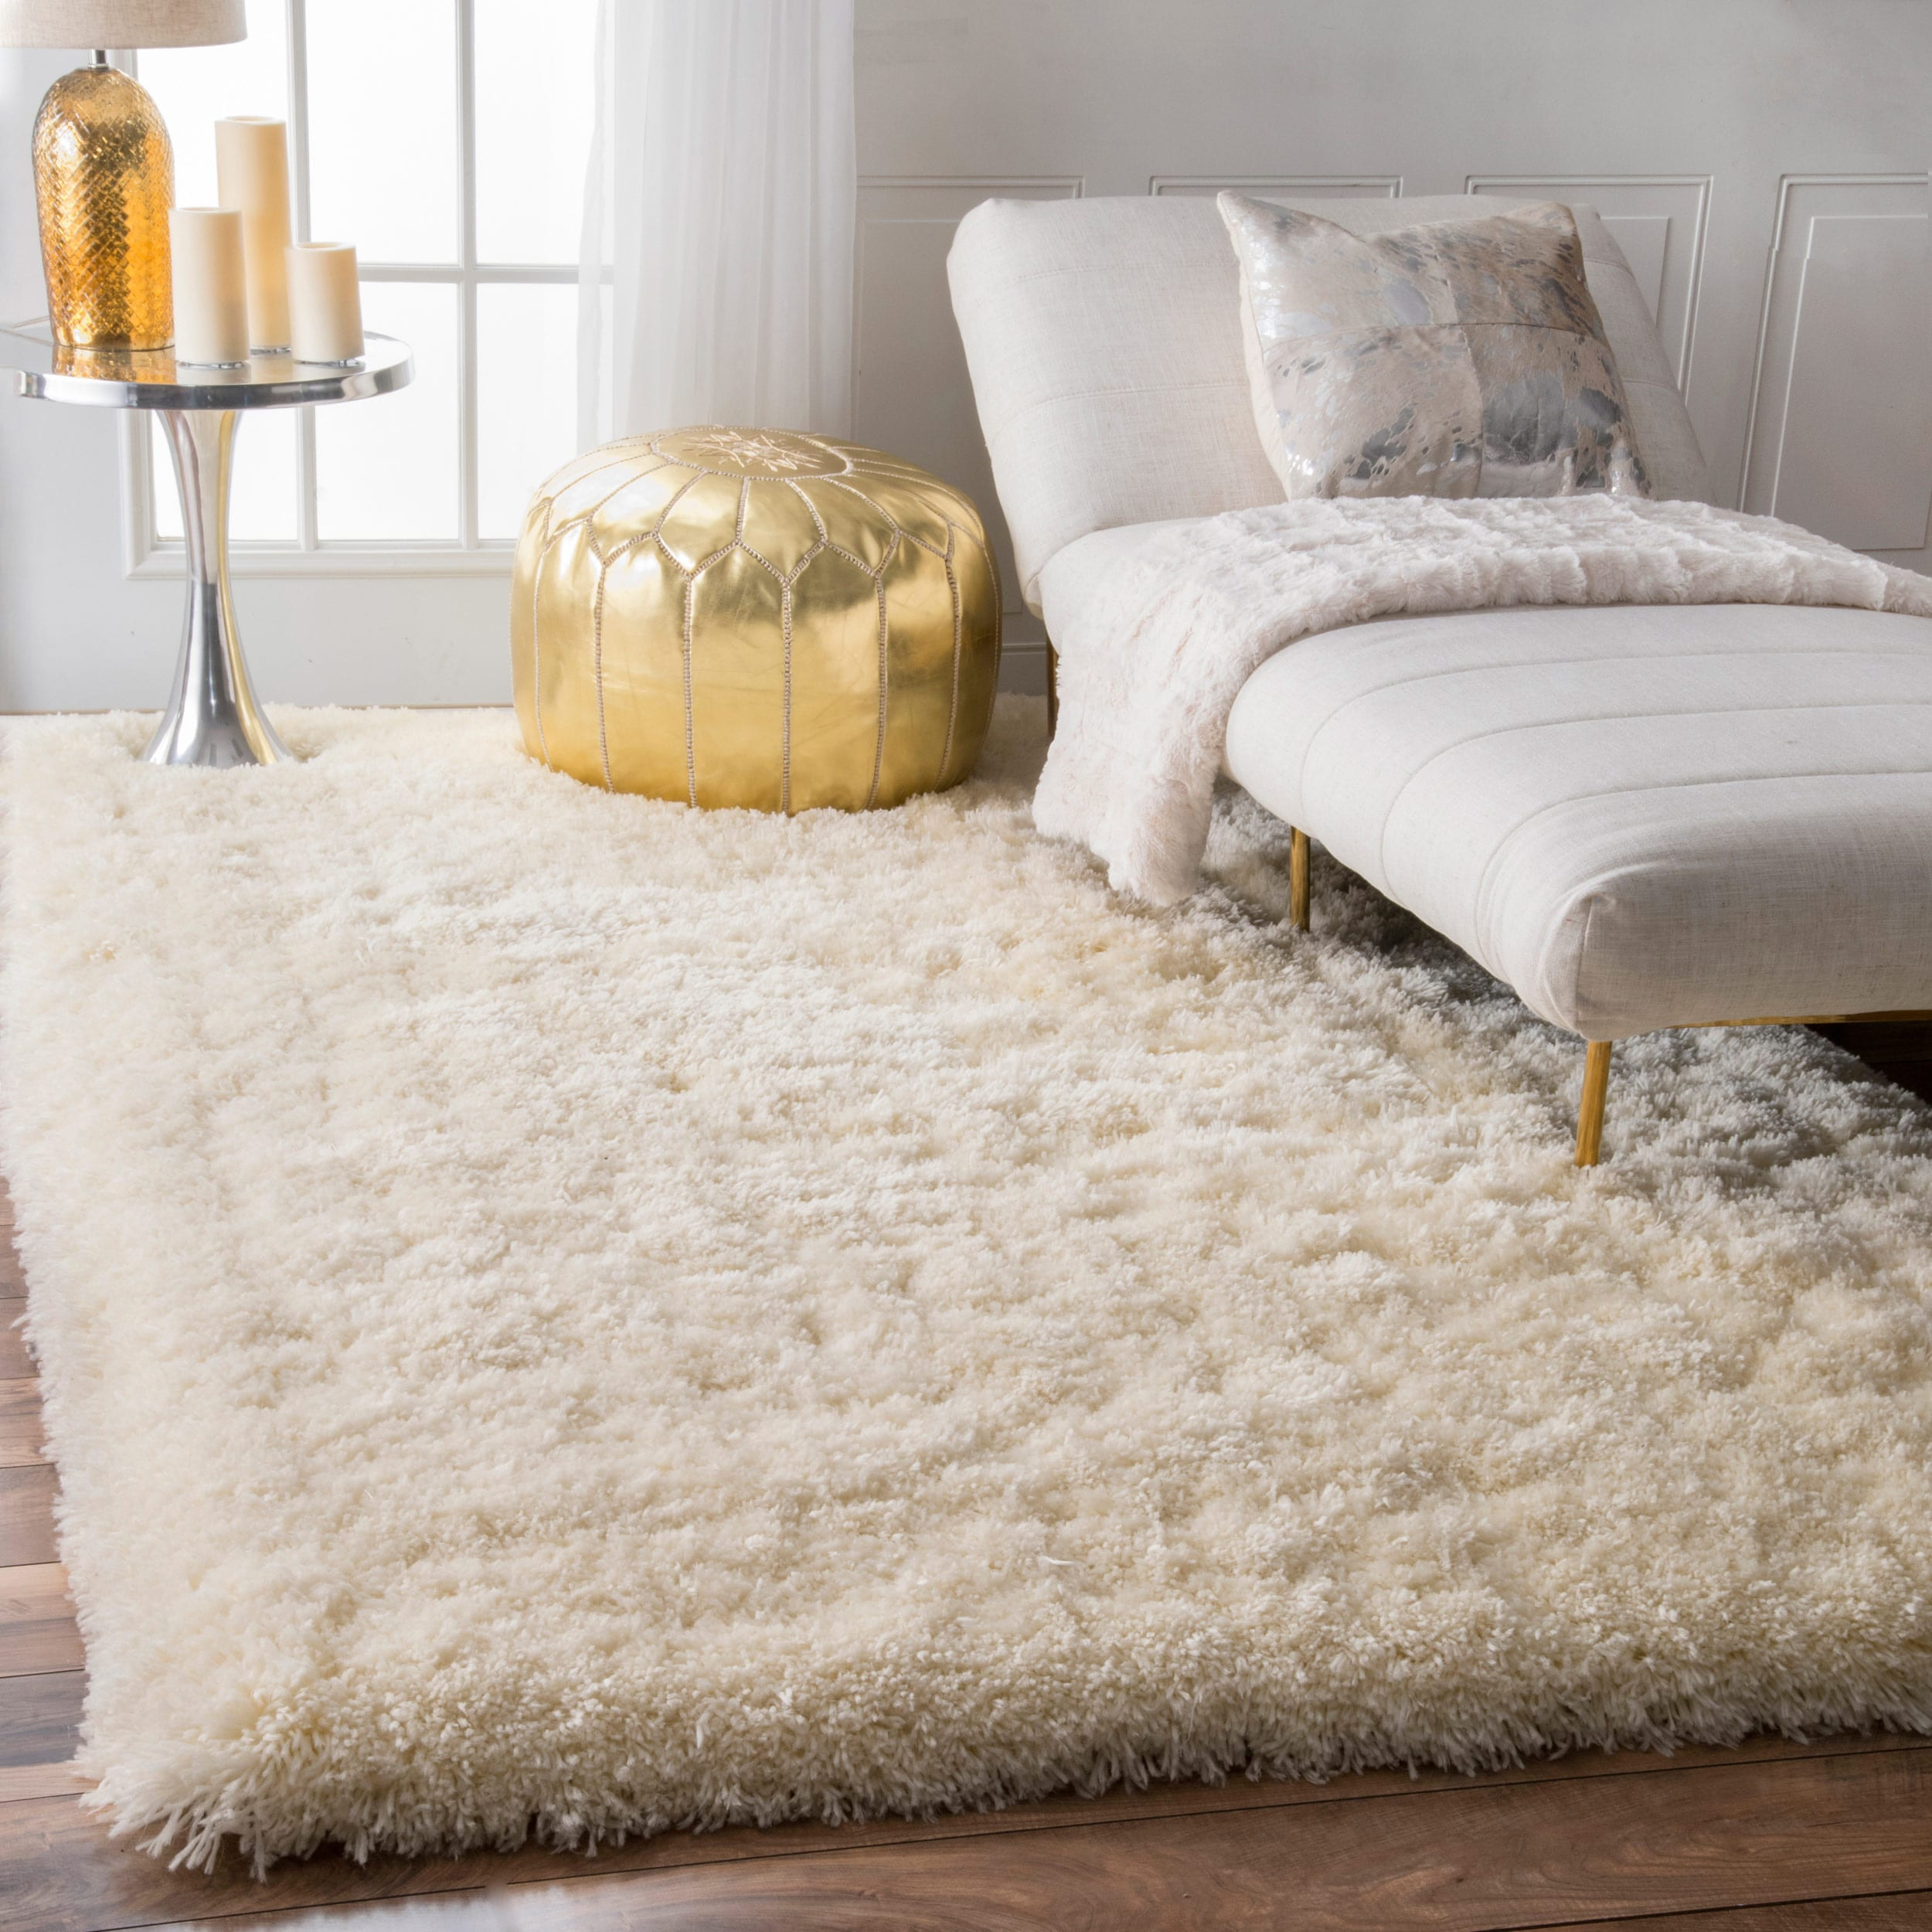 Nuloom Solid Soft And Plush Shag Rug Overstock 10522015